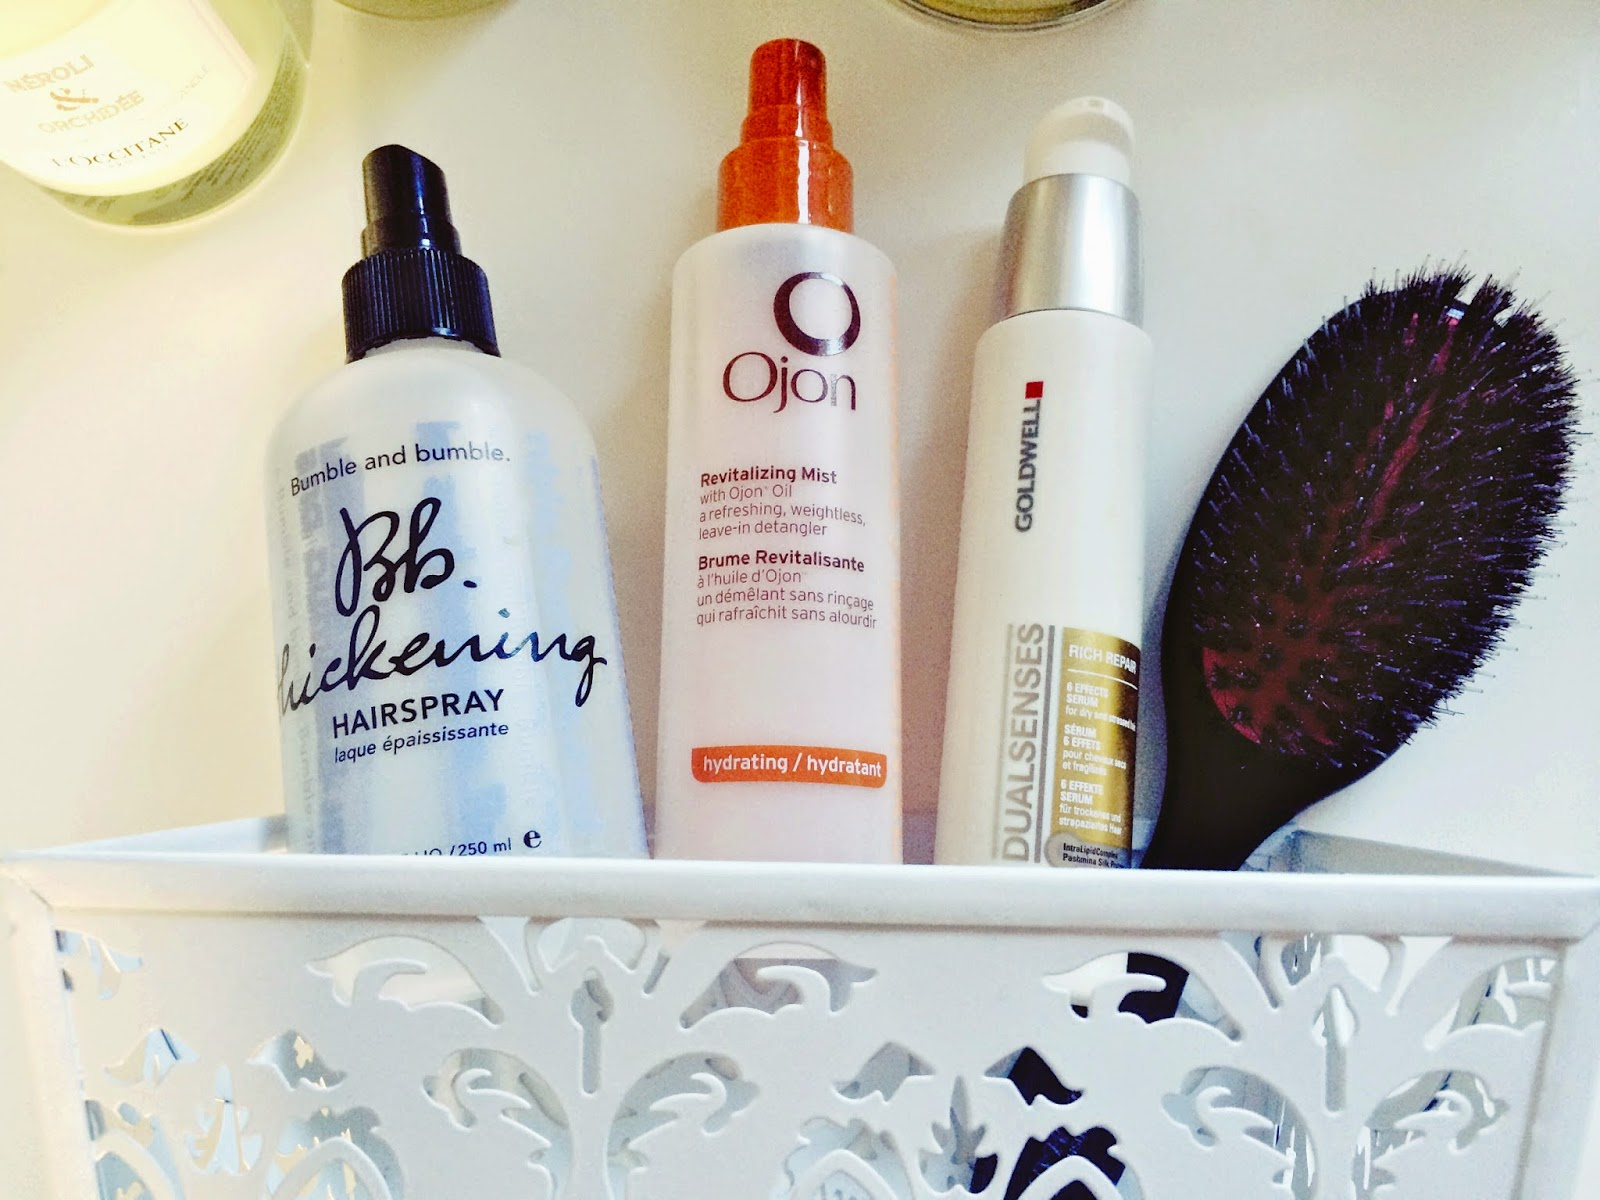 Hero Products for Fine, Broken and Damaged Hair